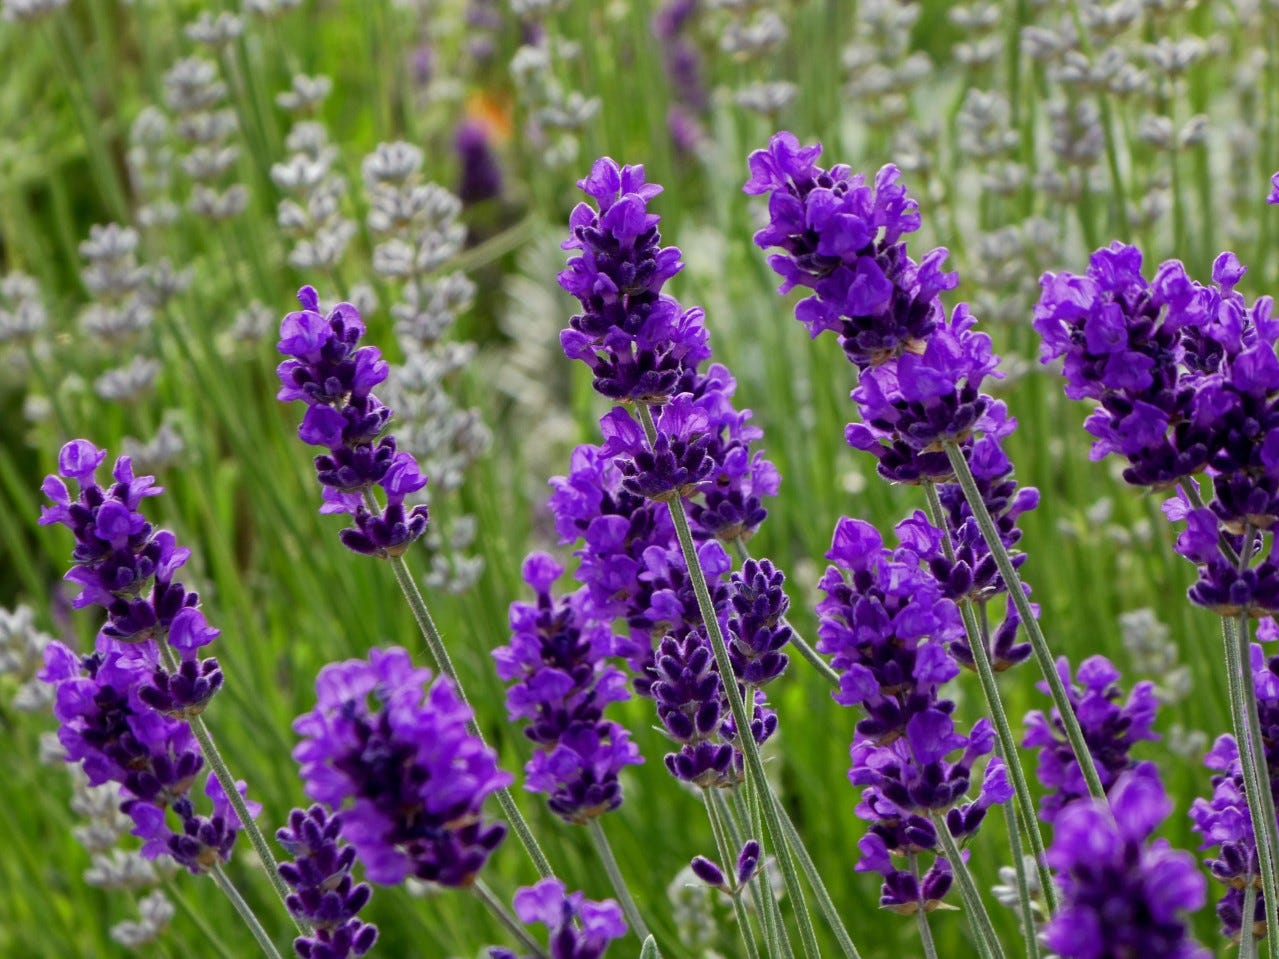 Lavender Angustifolia After Midnight Flowerkisser is the 2019 Plant of the Year for High Country Gardens.